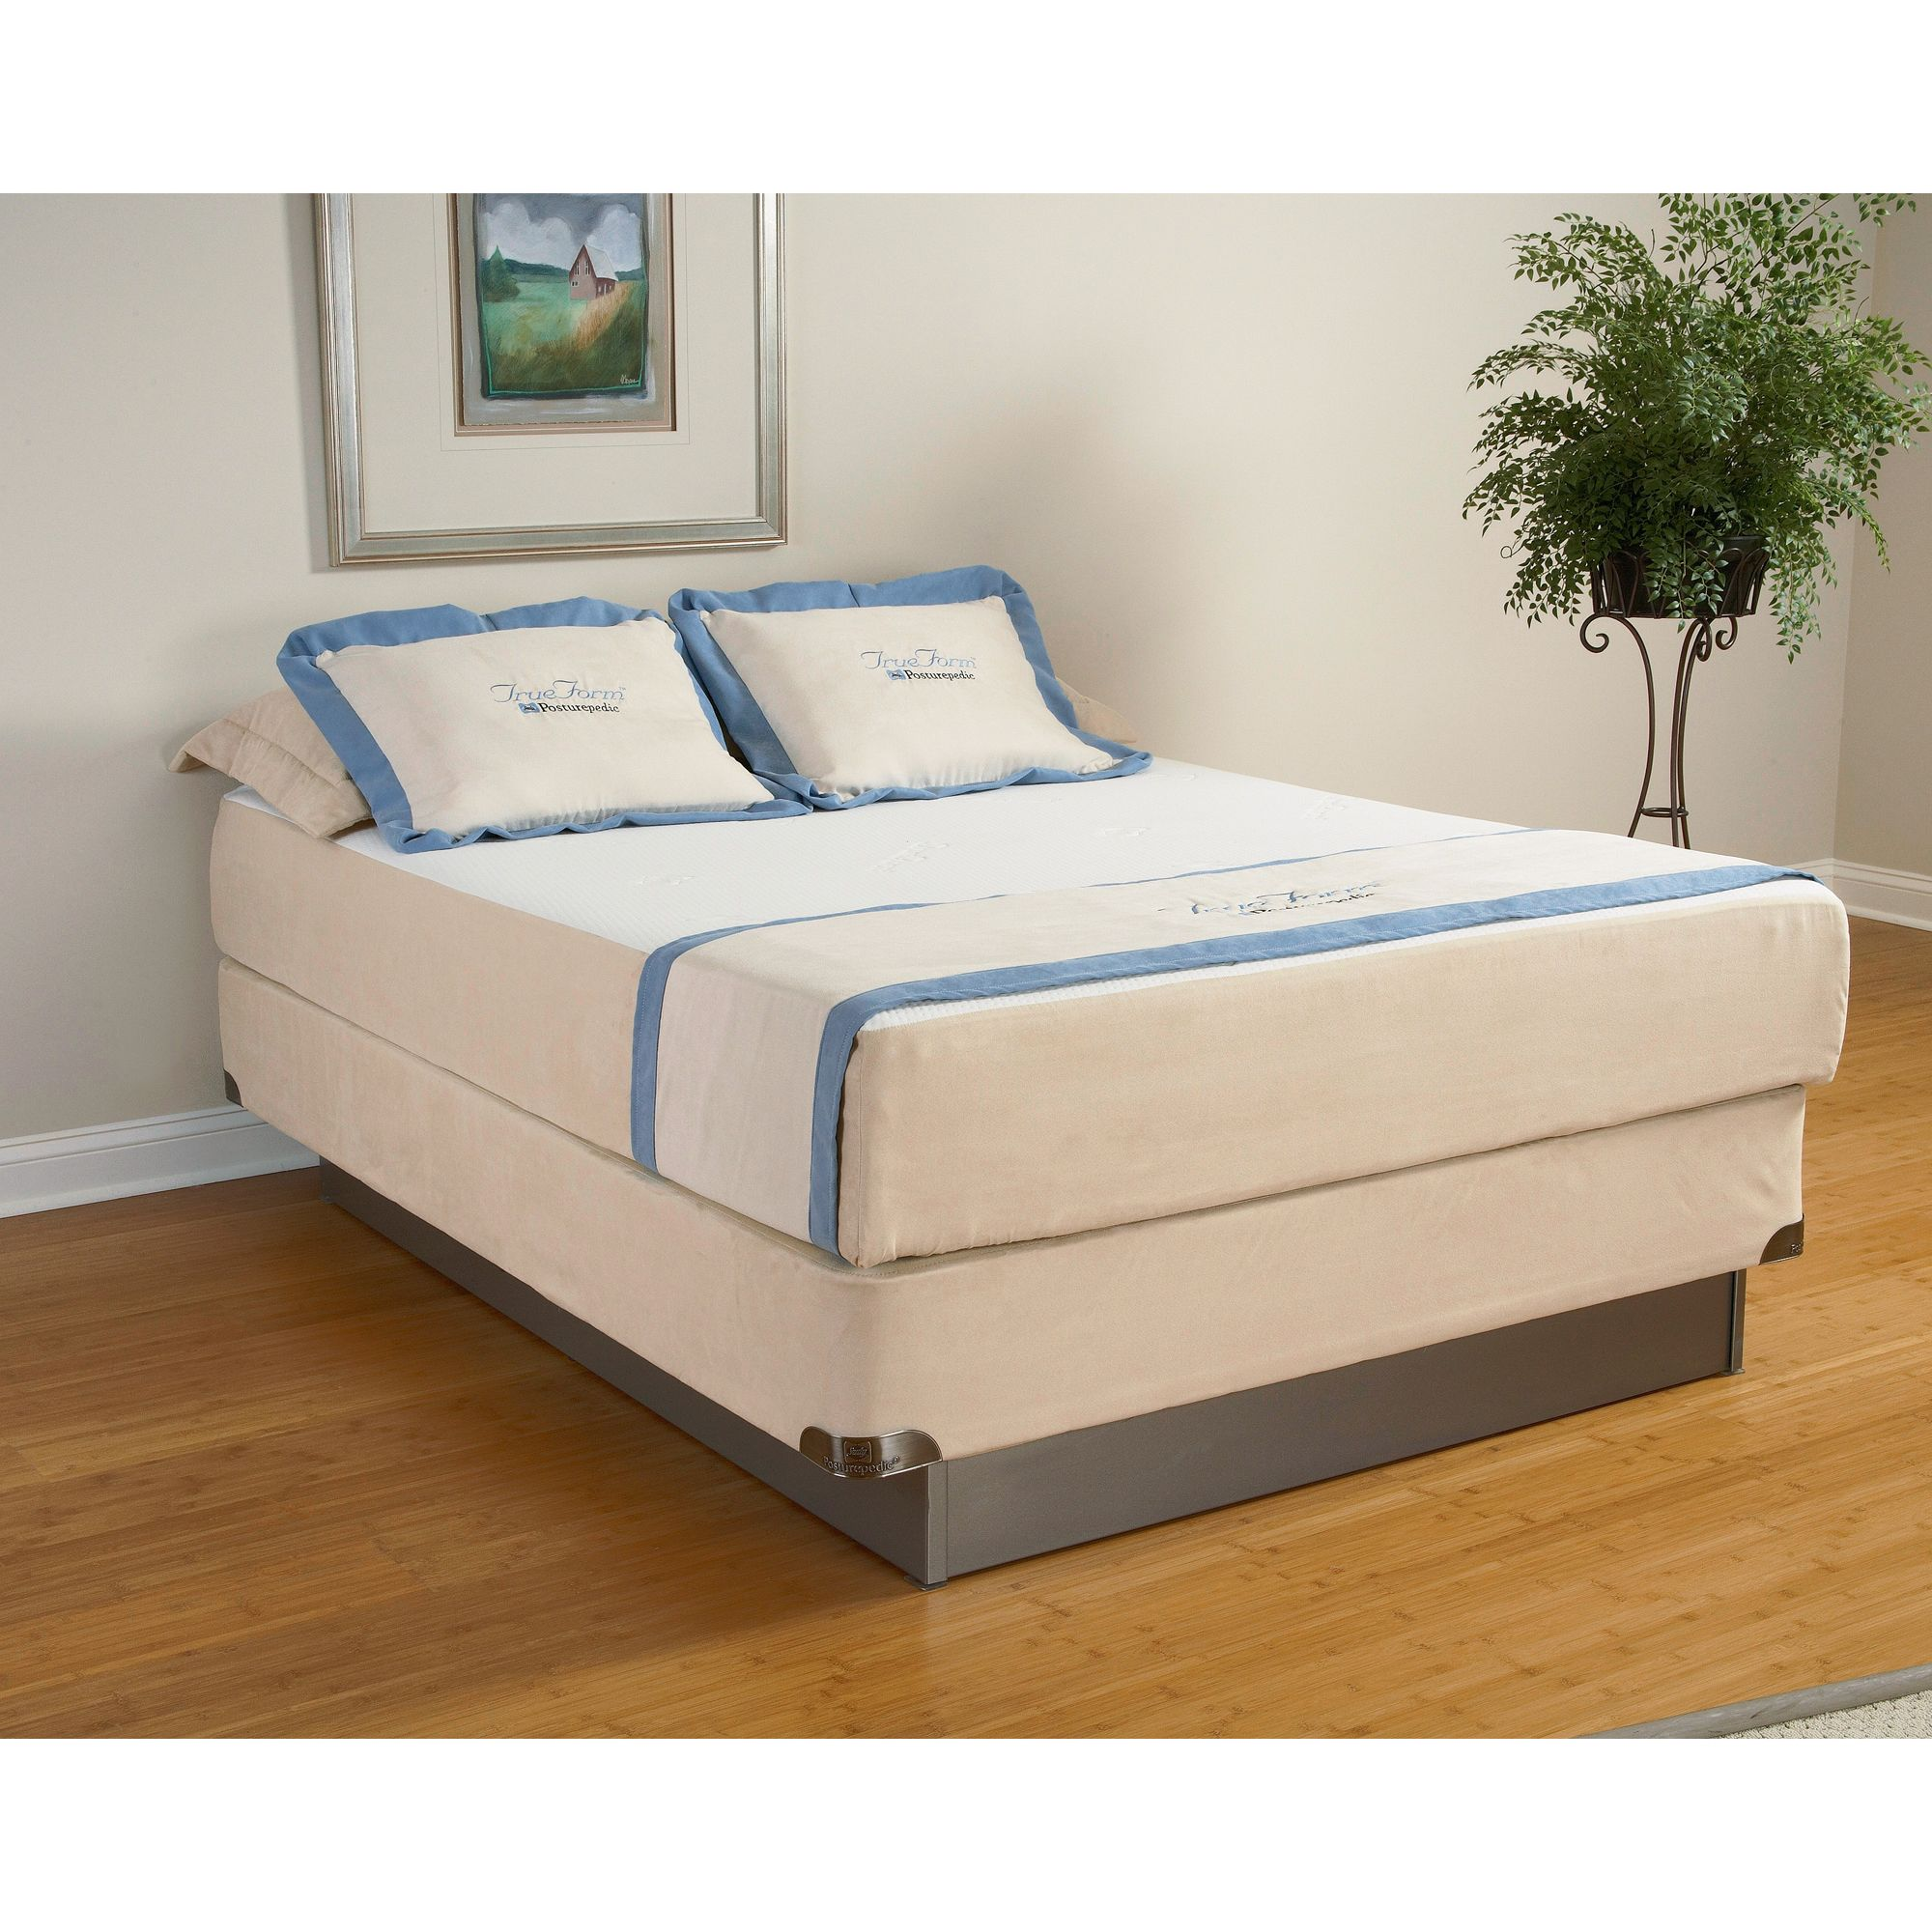 Sealy True Form Mattress In A Box